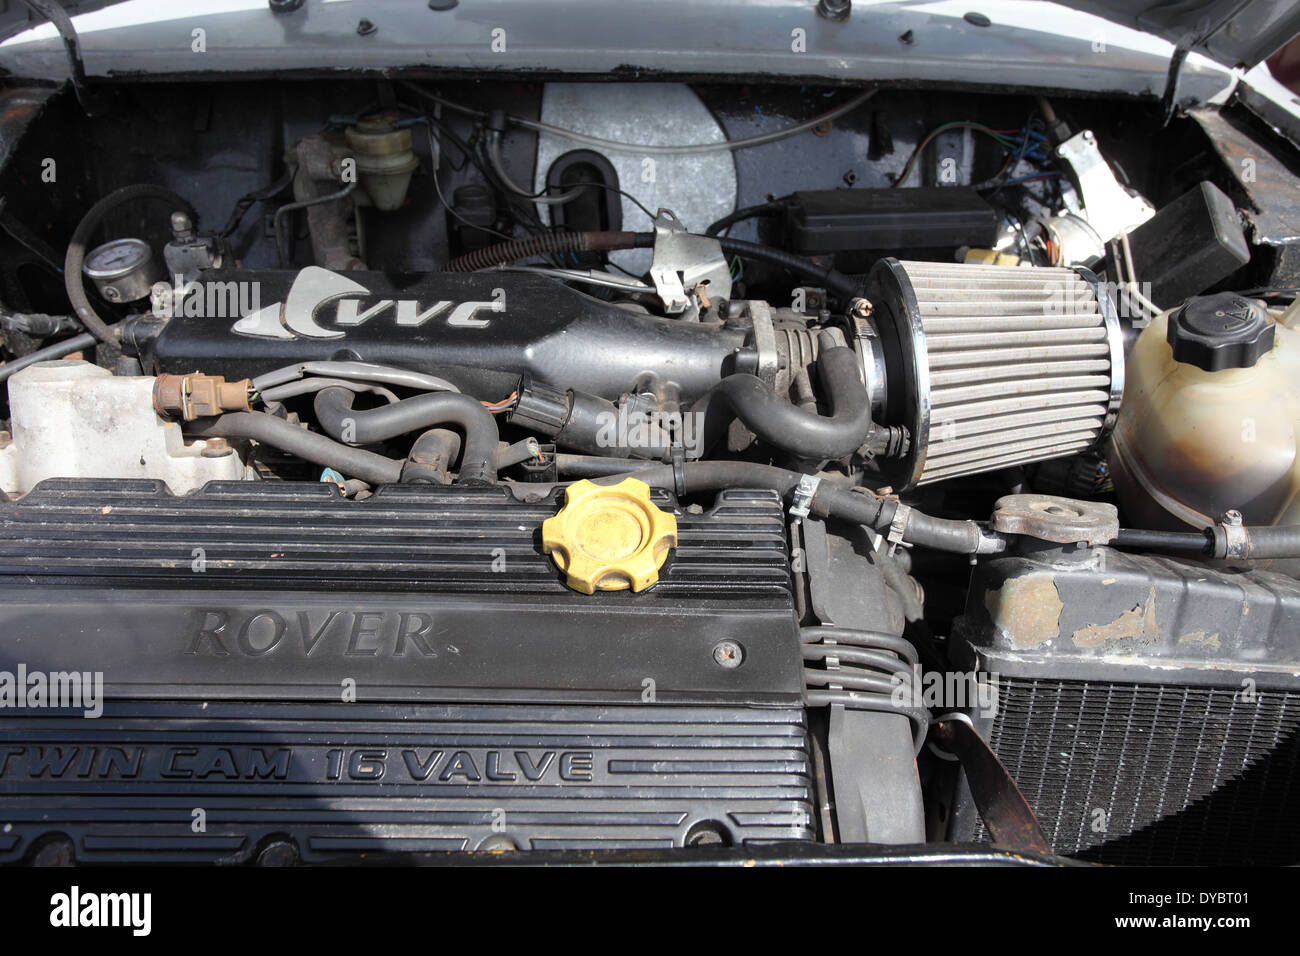 Under The Hood Of A Mini Showing A Rover Twin Cam 16 Valve Engine